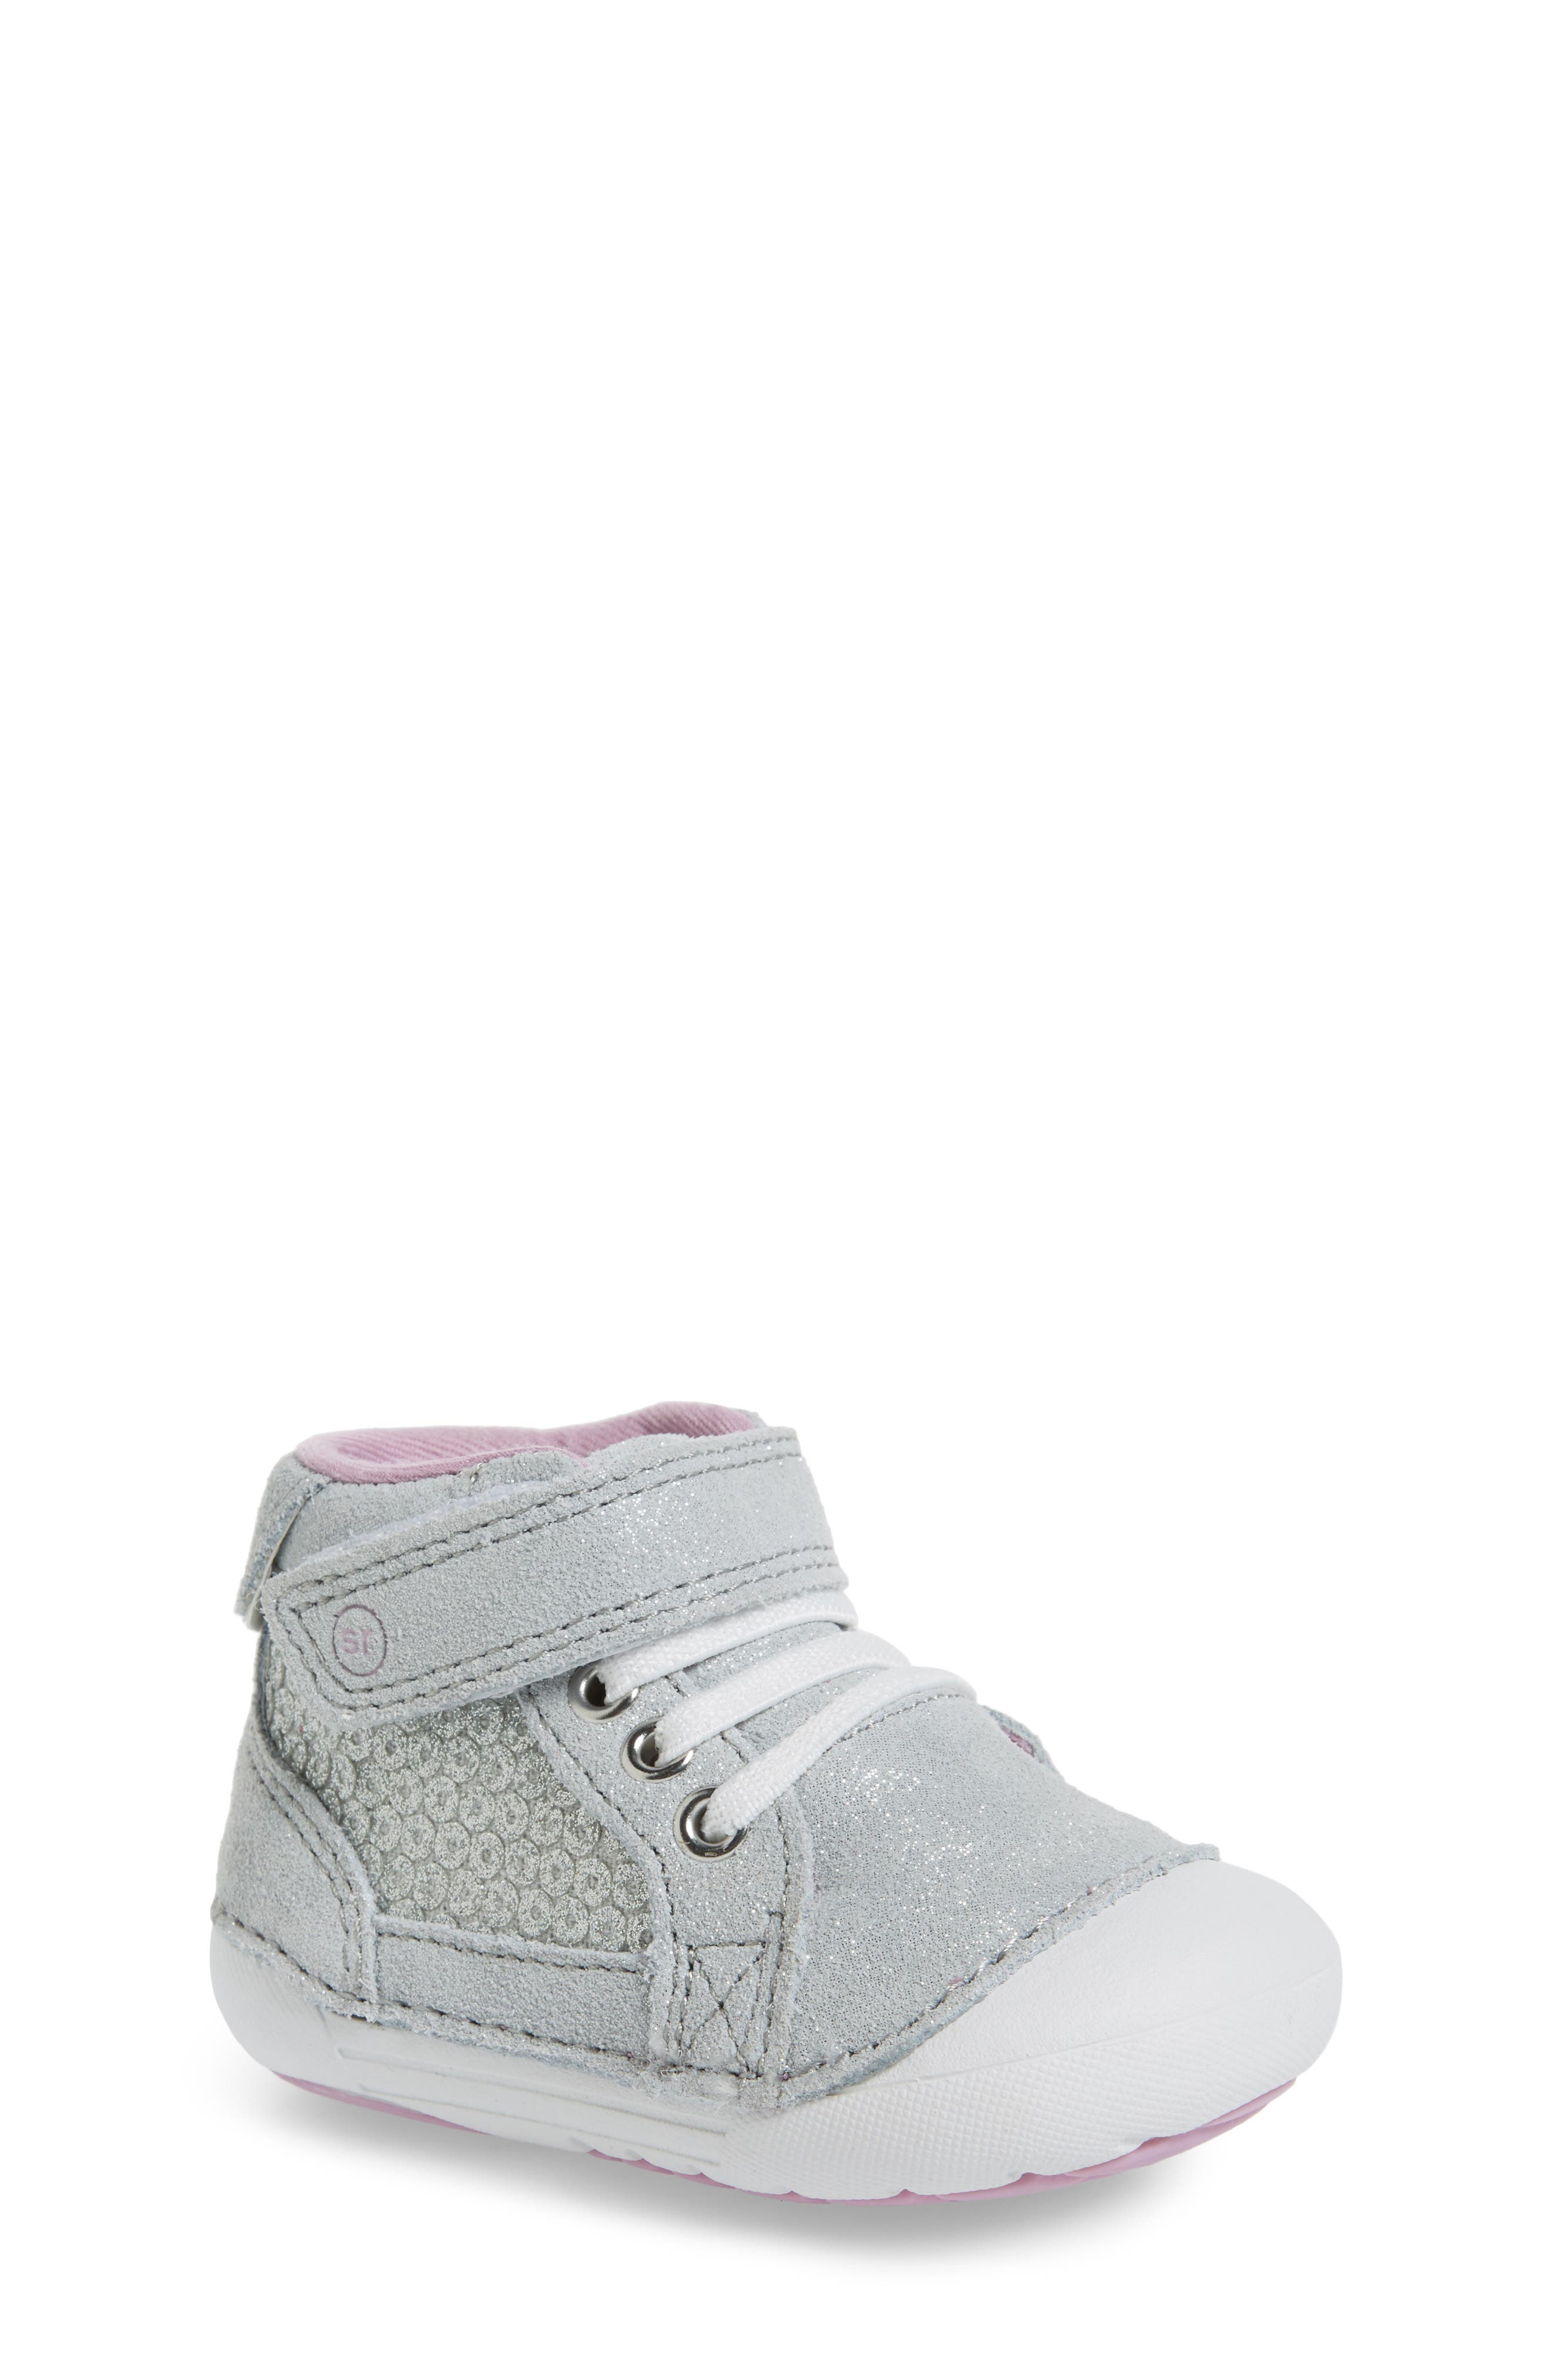 Soft Motion<sup>™</sup> Jada High Top Sneaker,                             Main thumbnail 1, color,                             Silver Metallic